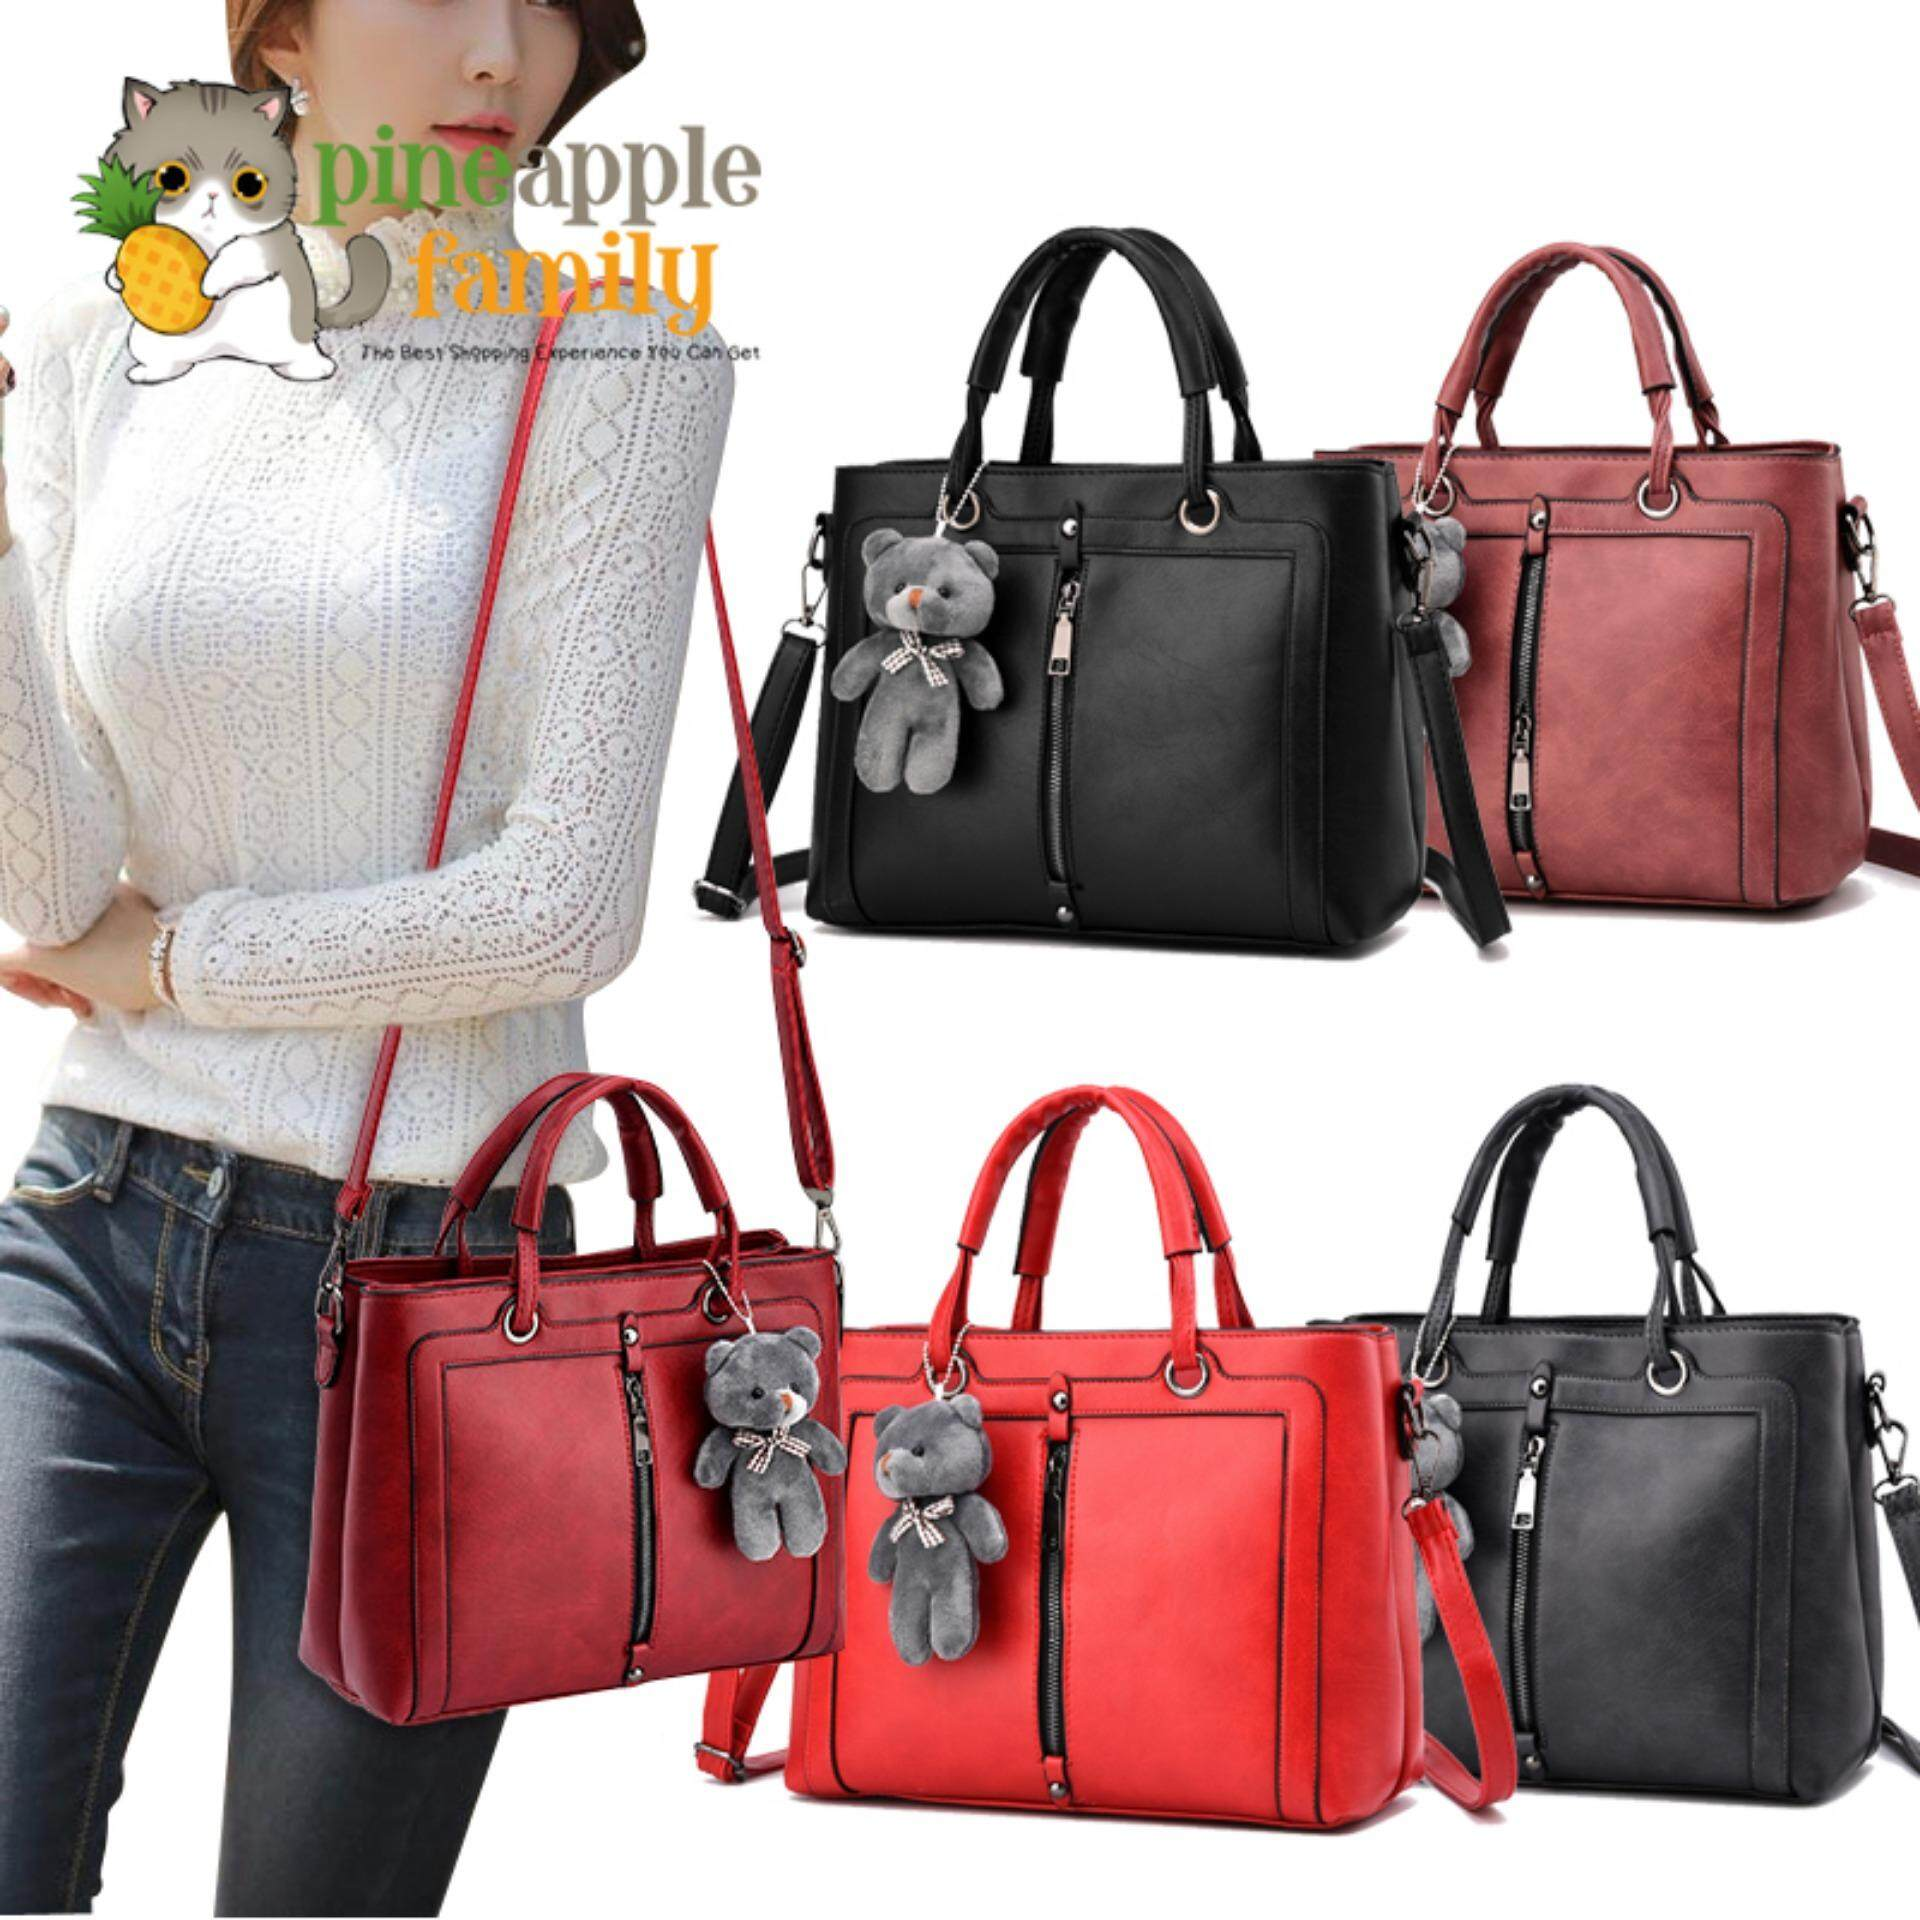 25af0a308e2c Women Bags - Buy Women Bags at Best Price in Malaysia